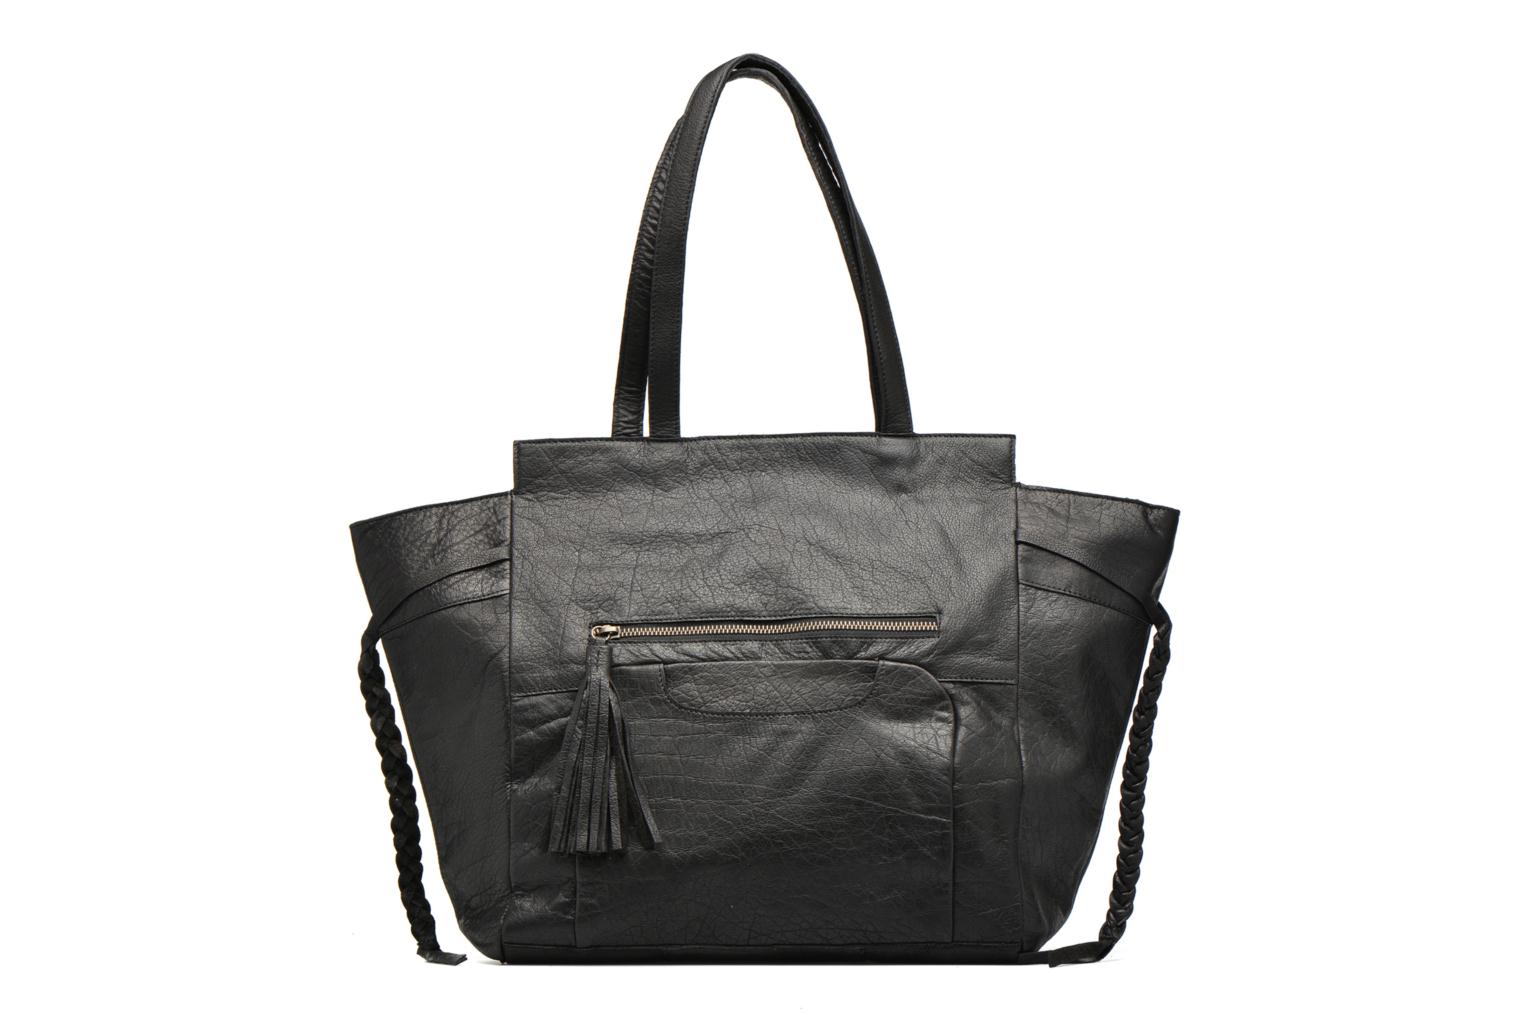 POFO Leather bag Black